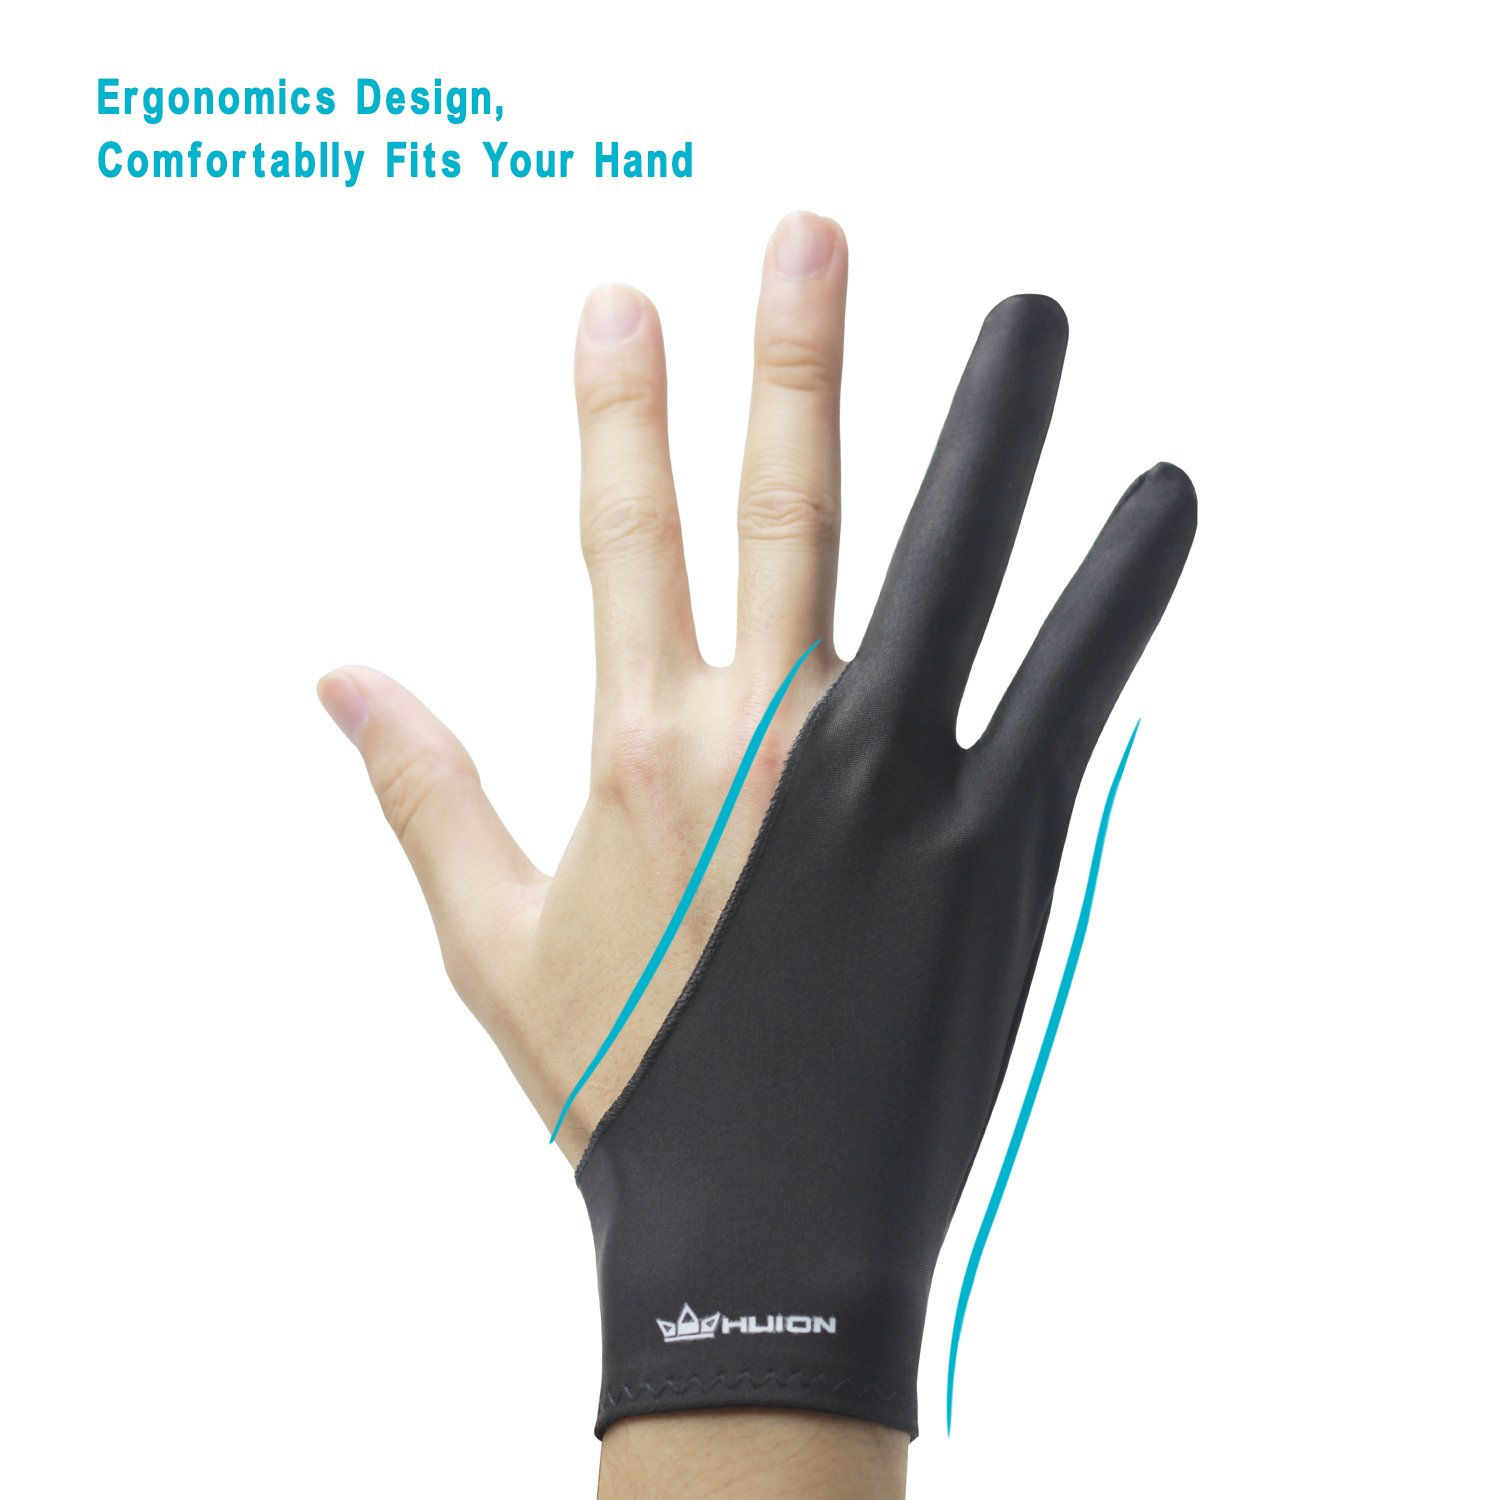 Fingerless gloves for drawing - Amazon Com Huion Artist Glove For Drawing Tablet 1 Unit Of Free Size Good For Right Hand Or Left Hand Cura Cr 01 Computers Accessories